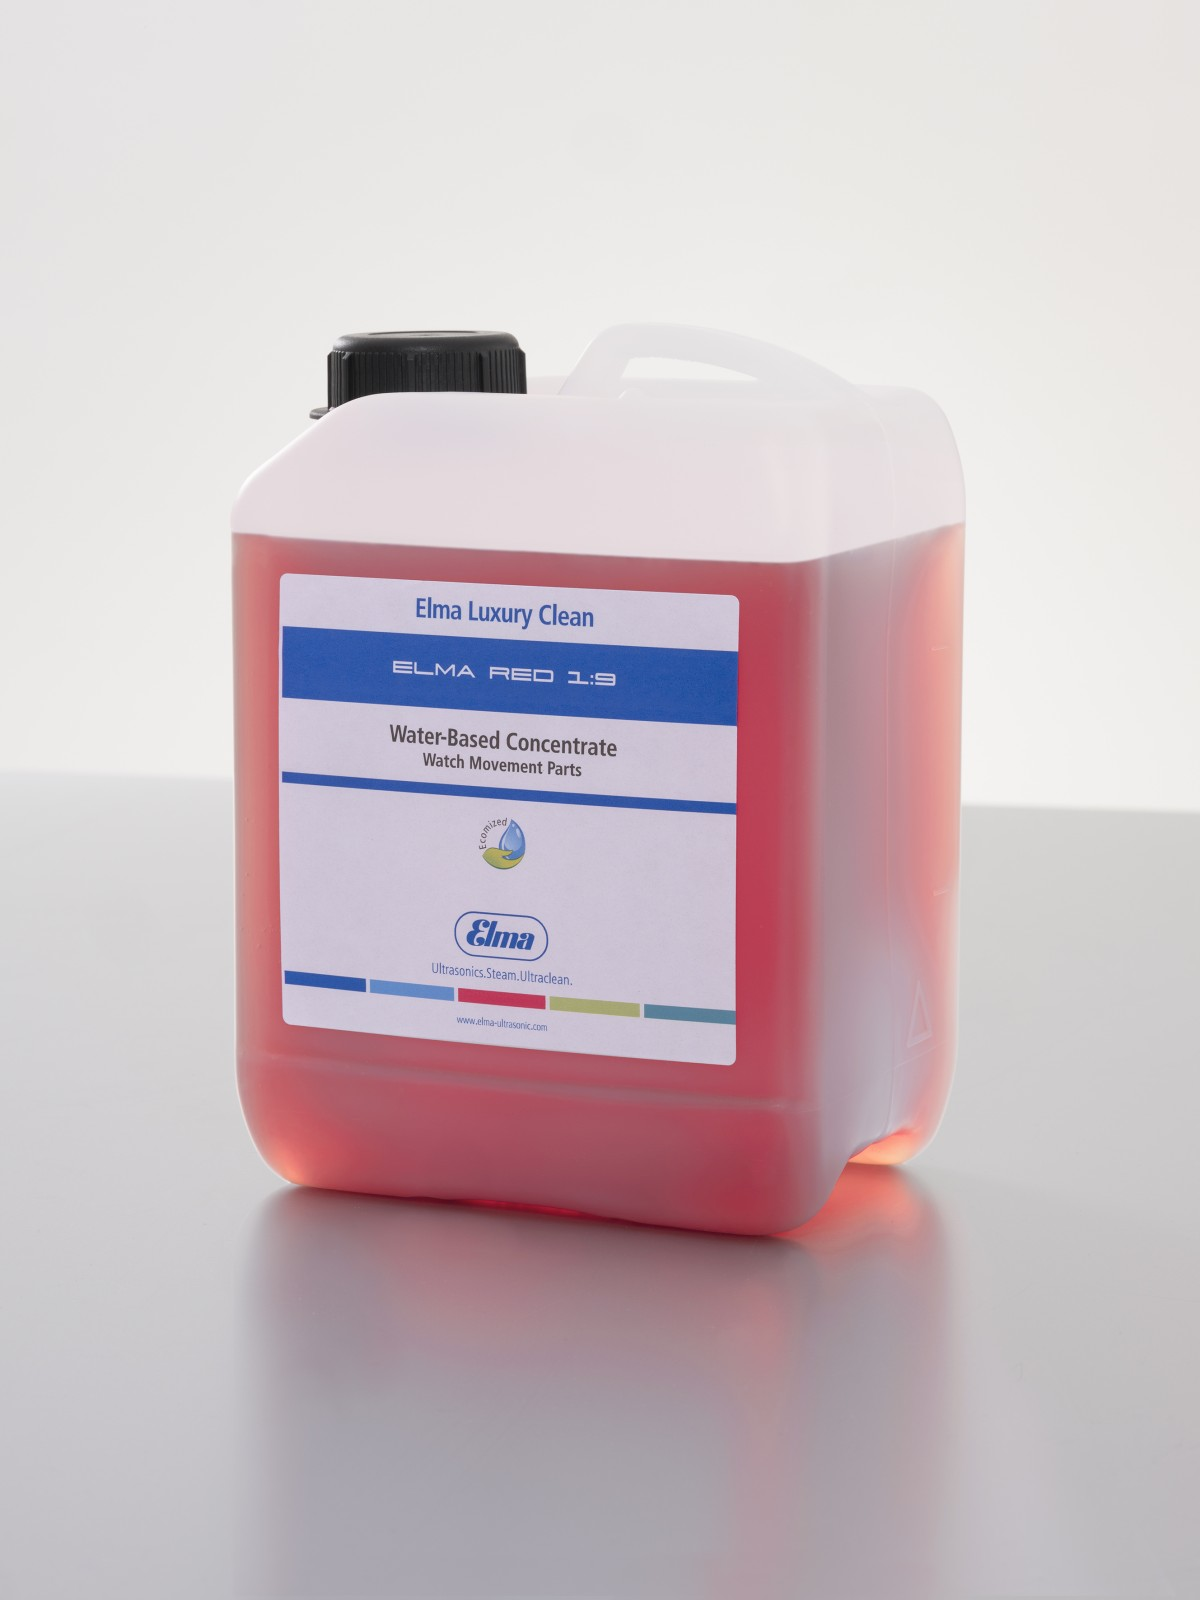 Cleaning concentrate standard 1:9 Elma